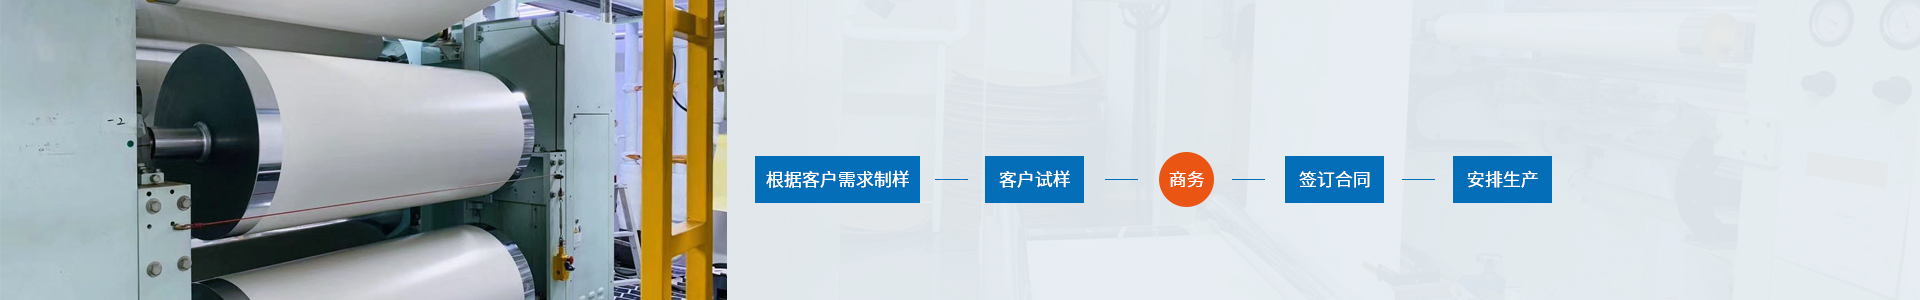 http://www.wxhangxin.com/data/upload/202001/20200108085026_905.jpg